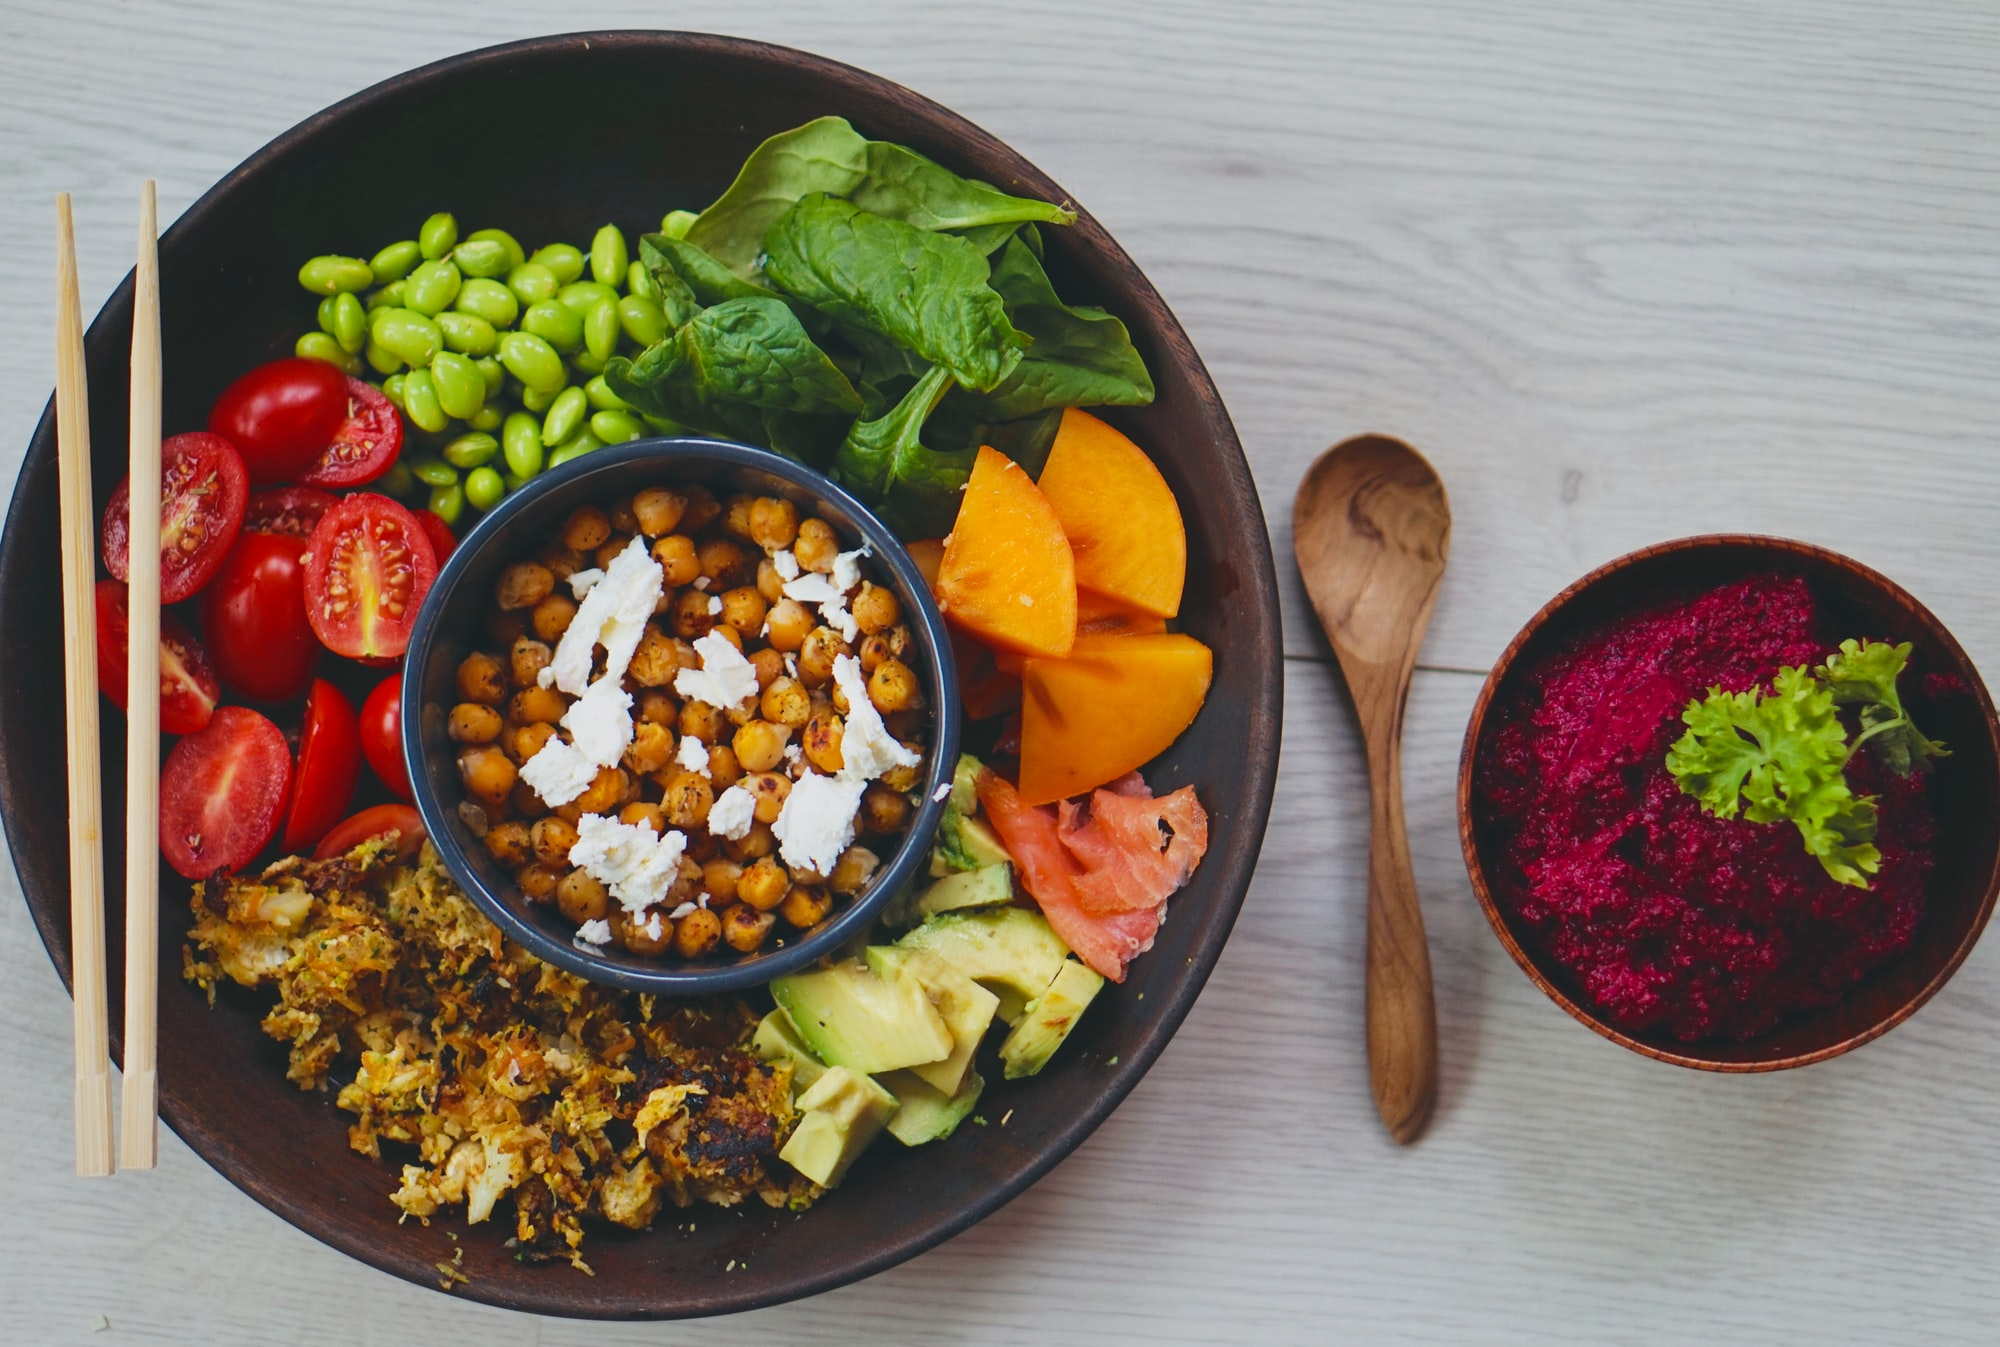 Heal your gut with the 30-foods challenge by Charlotte Karlsen for Unsplash.